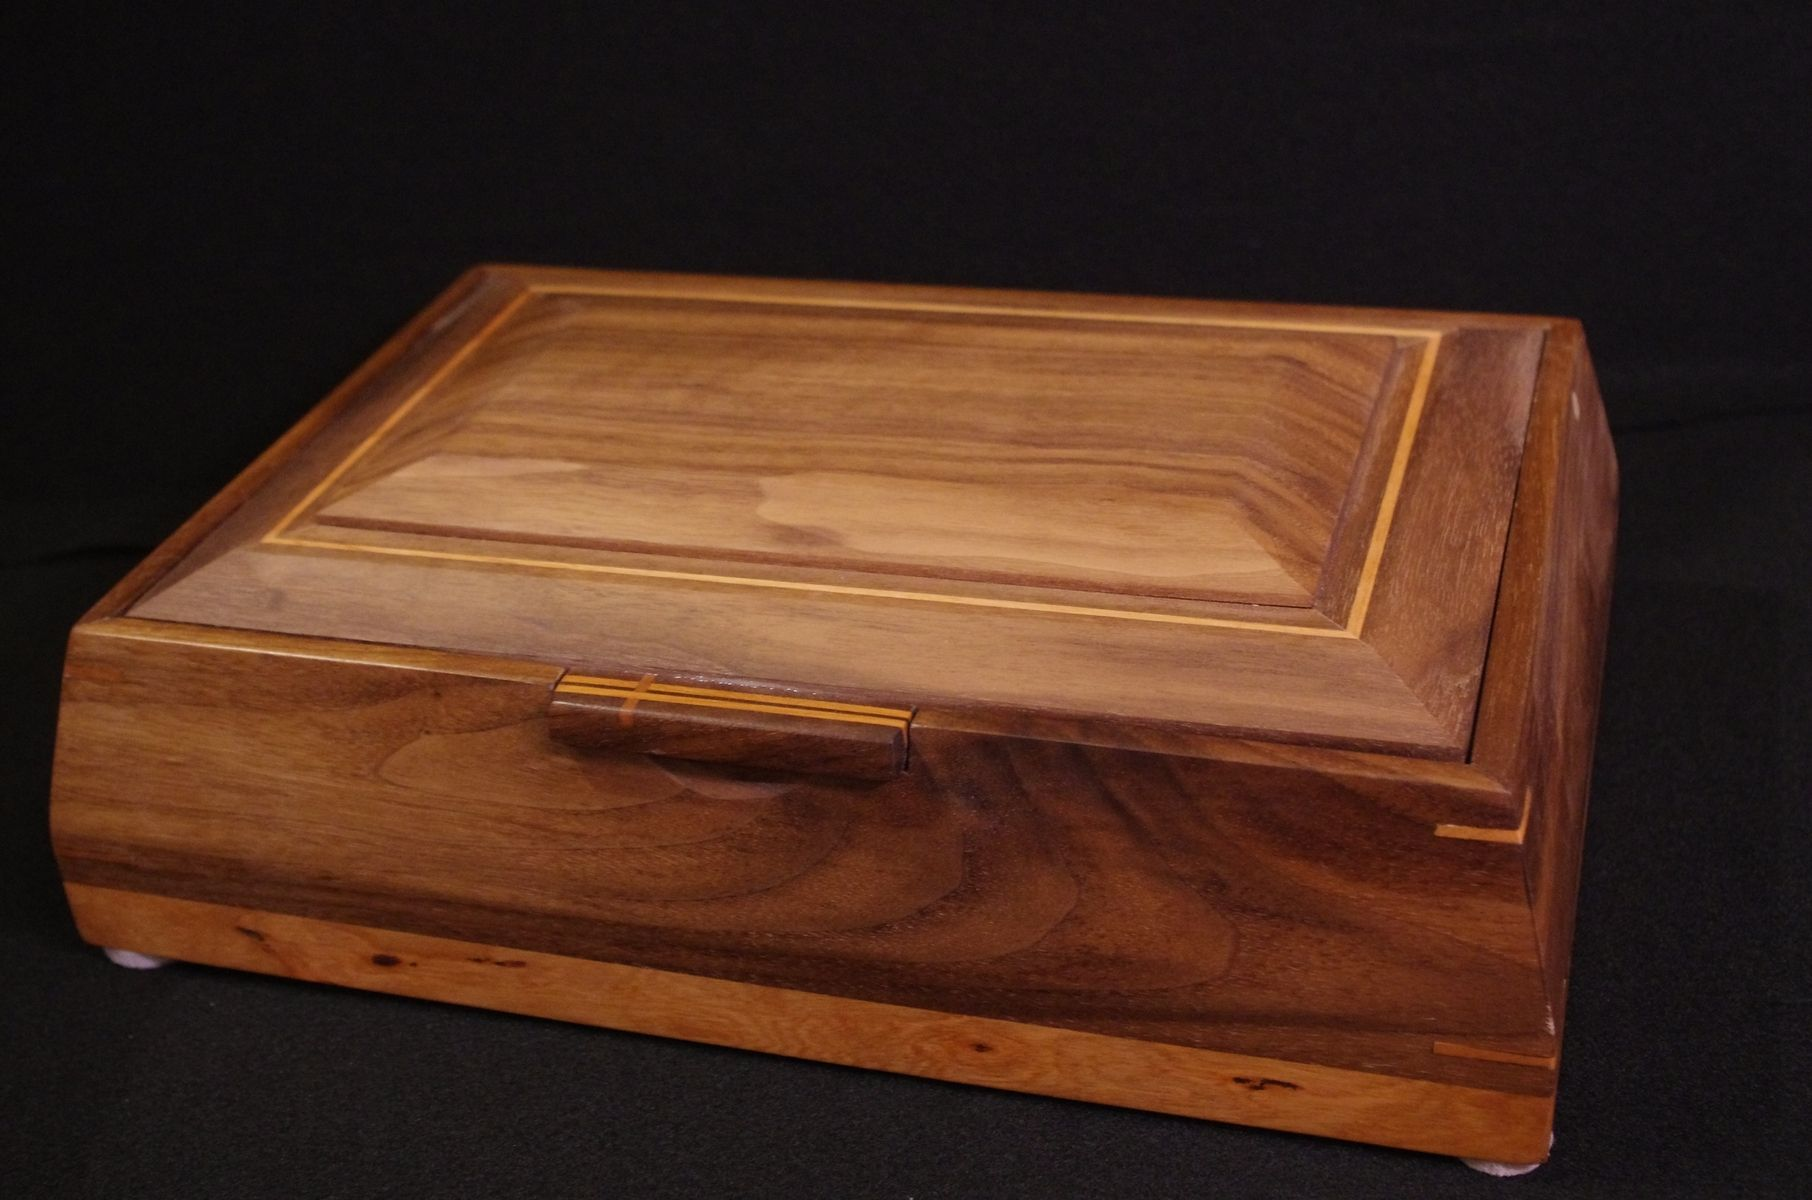 Handmade Walnut And Cherry Beveled Valet Box By Lawson